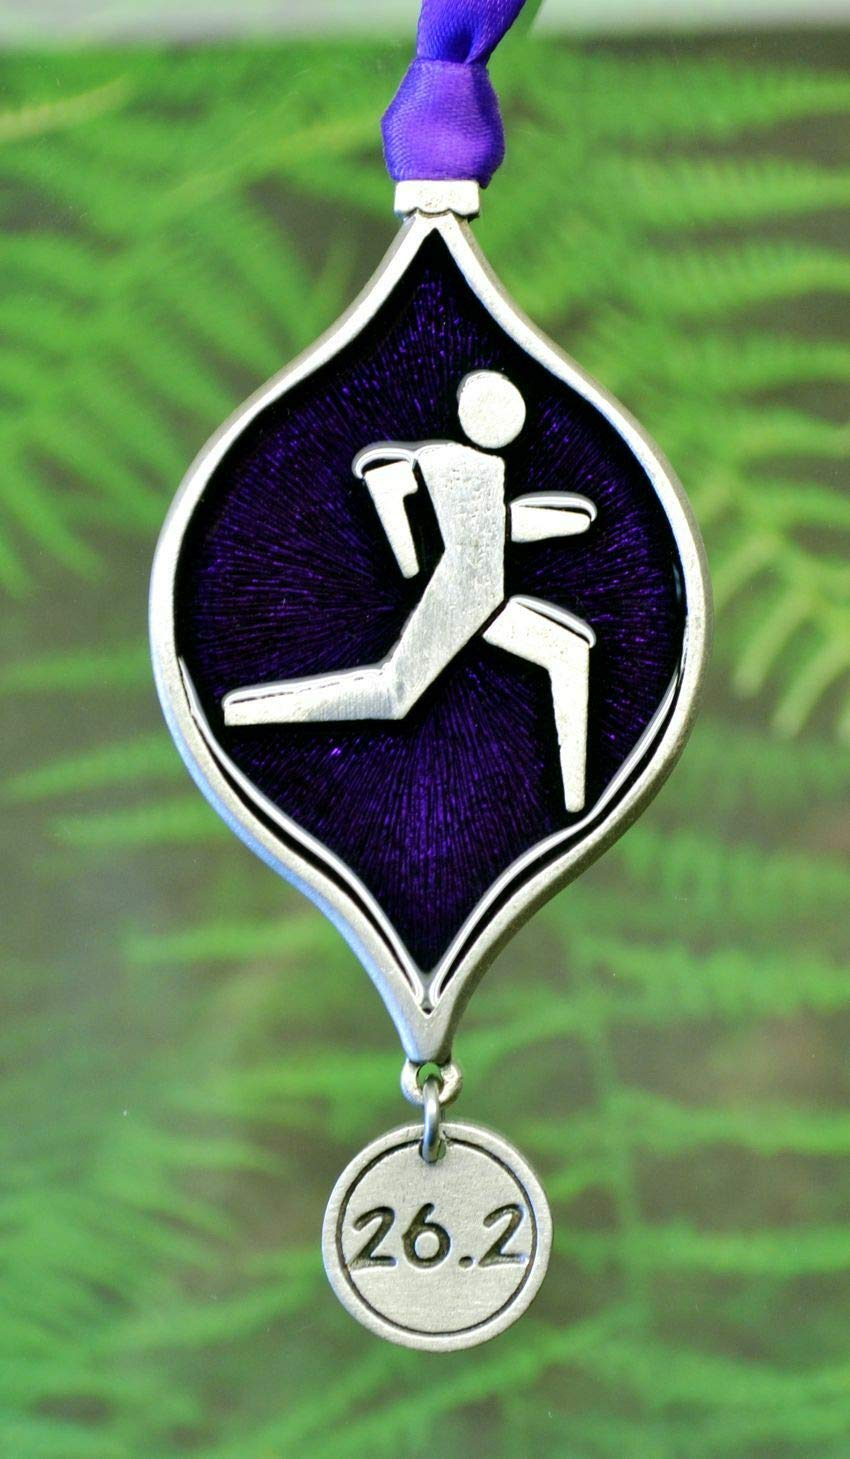 26.2 Marathon Runner Christmas Ornament  Decorations for Runners in Fine Pewter